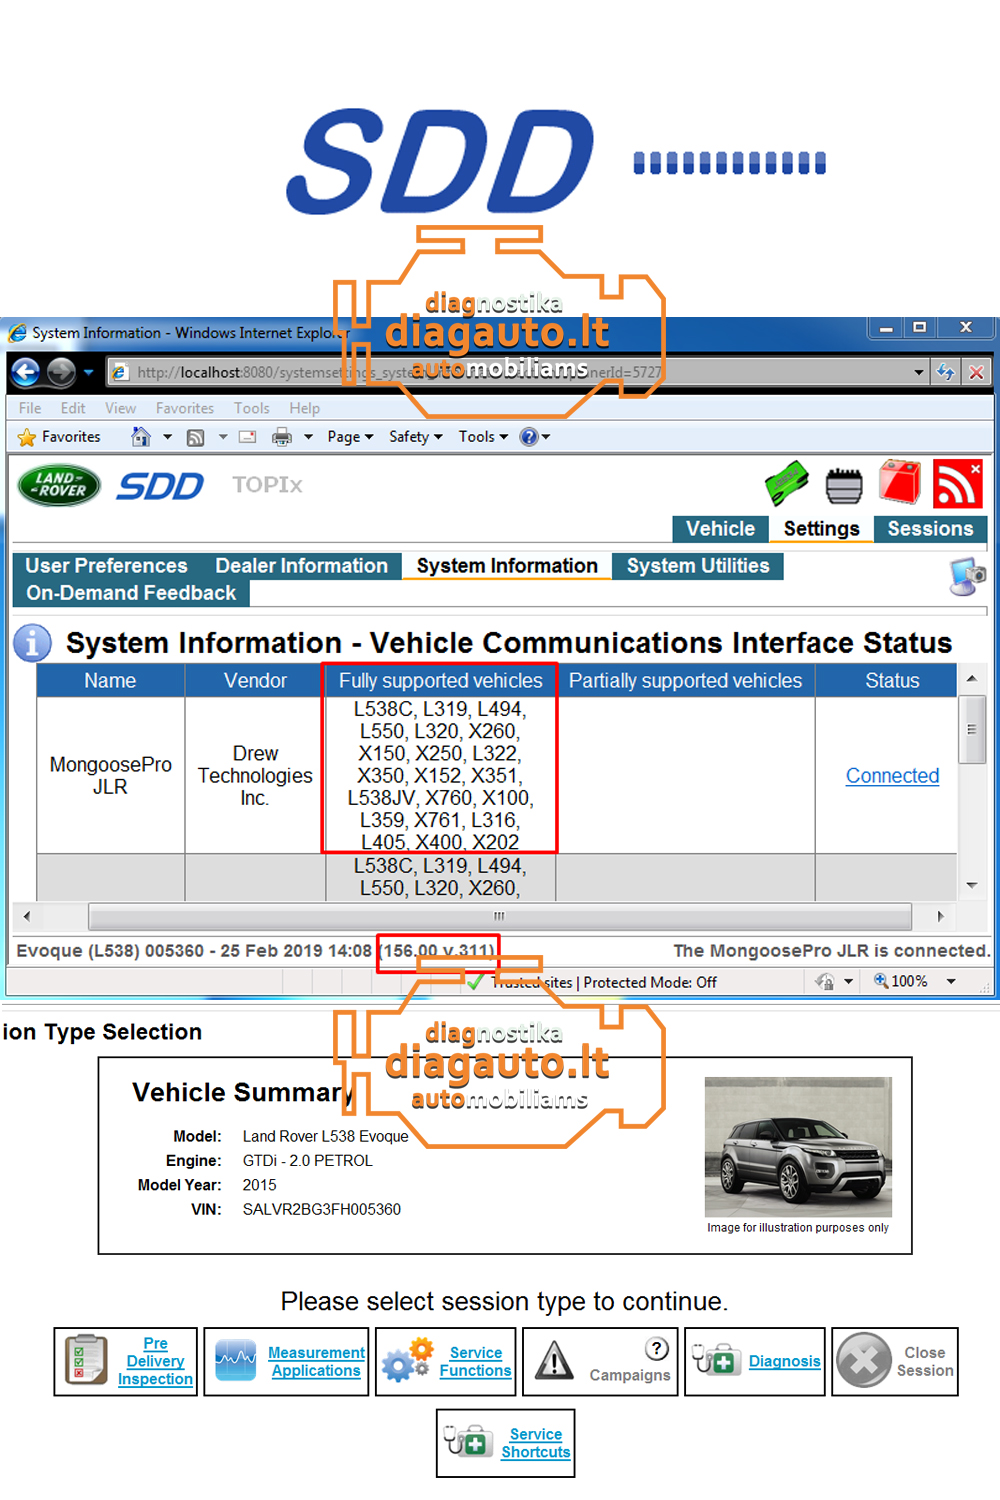 Mangoose JLR SDD/Volvo VIDA/TOYOTA TIS Techstream 3 in 1 device